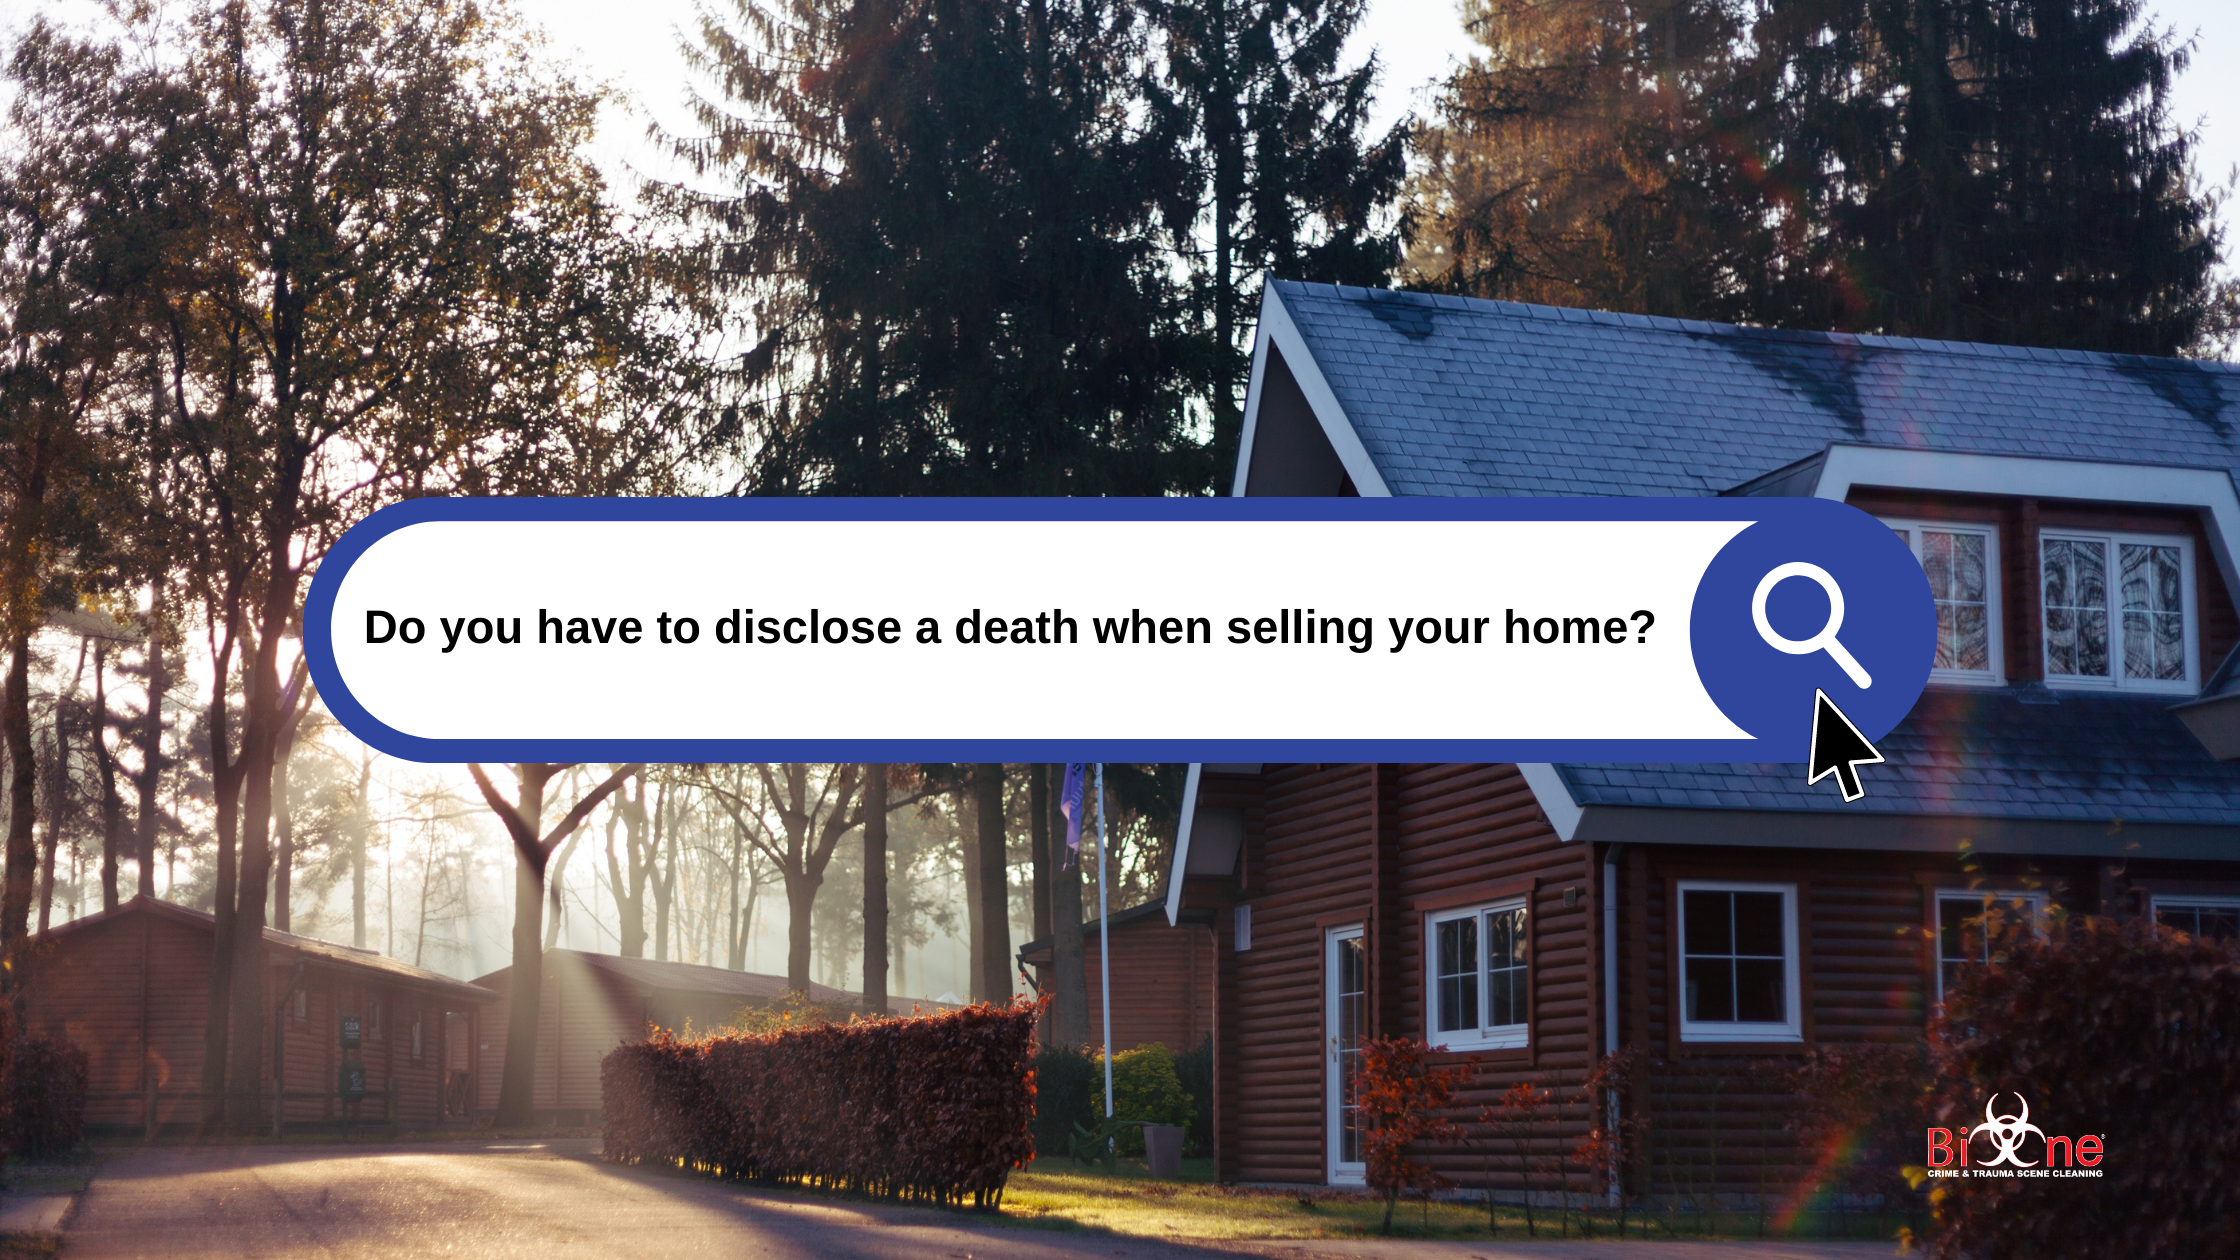 In Florida Do you Have to Disclose a Death When Selling Your Home?